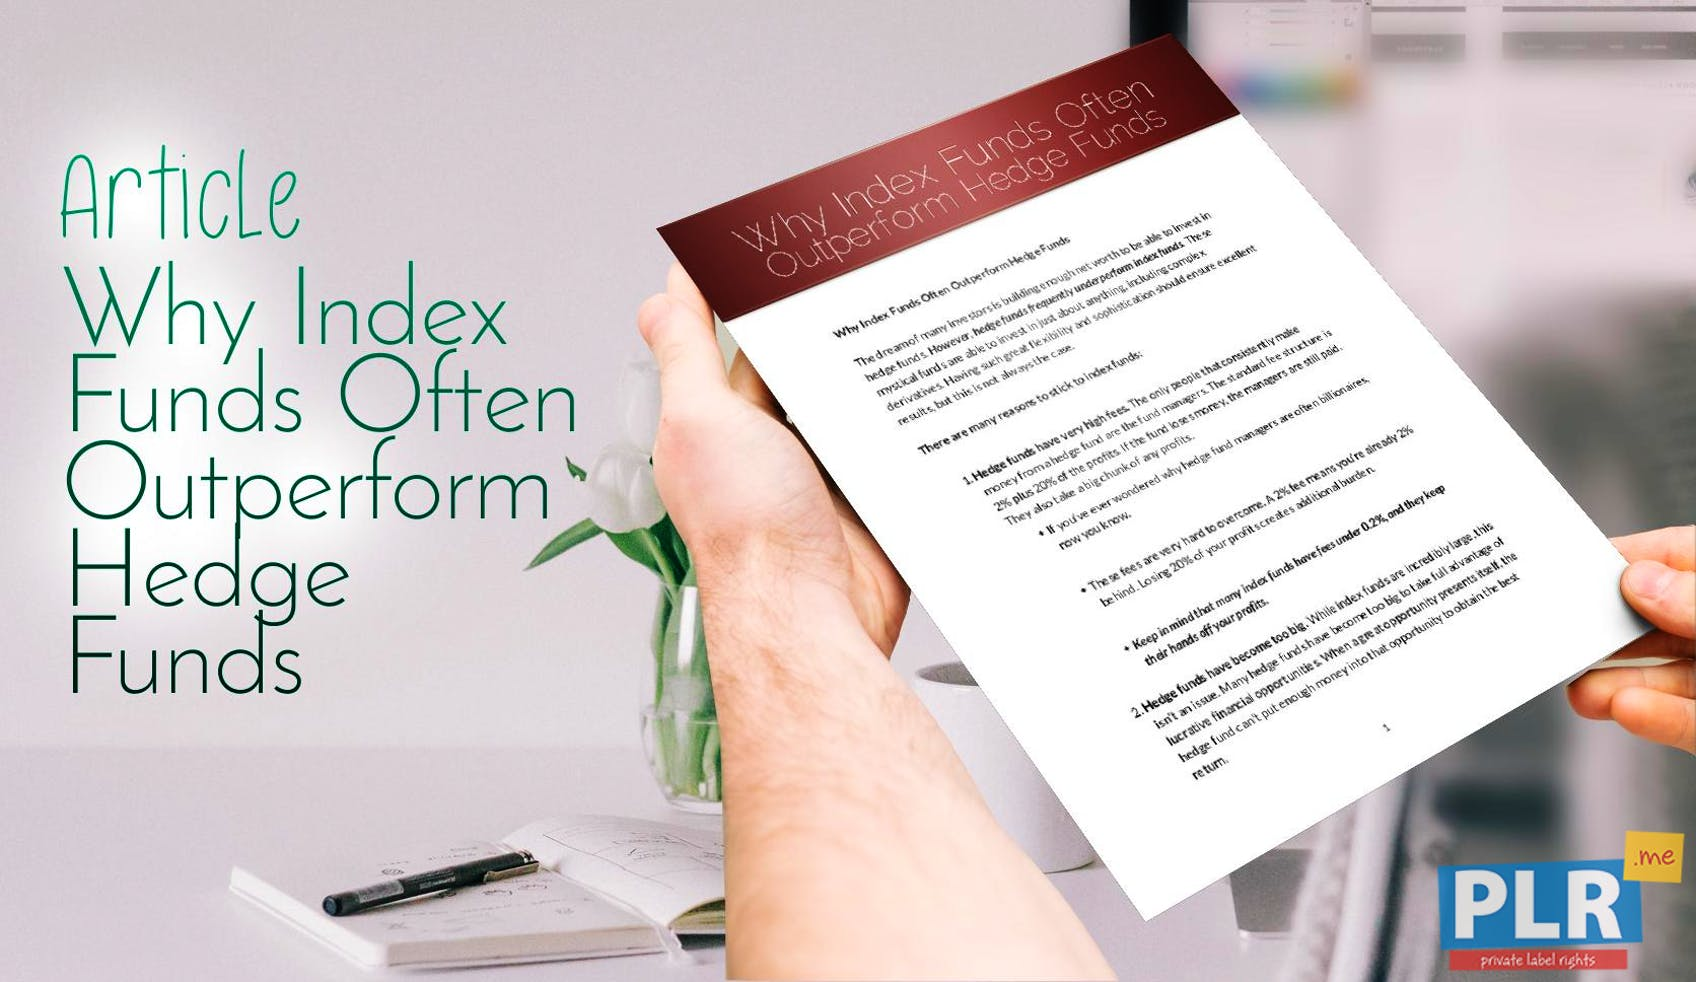 Why Index Funds Often Outperform Hedge Funds